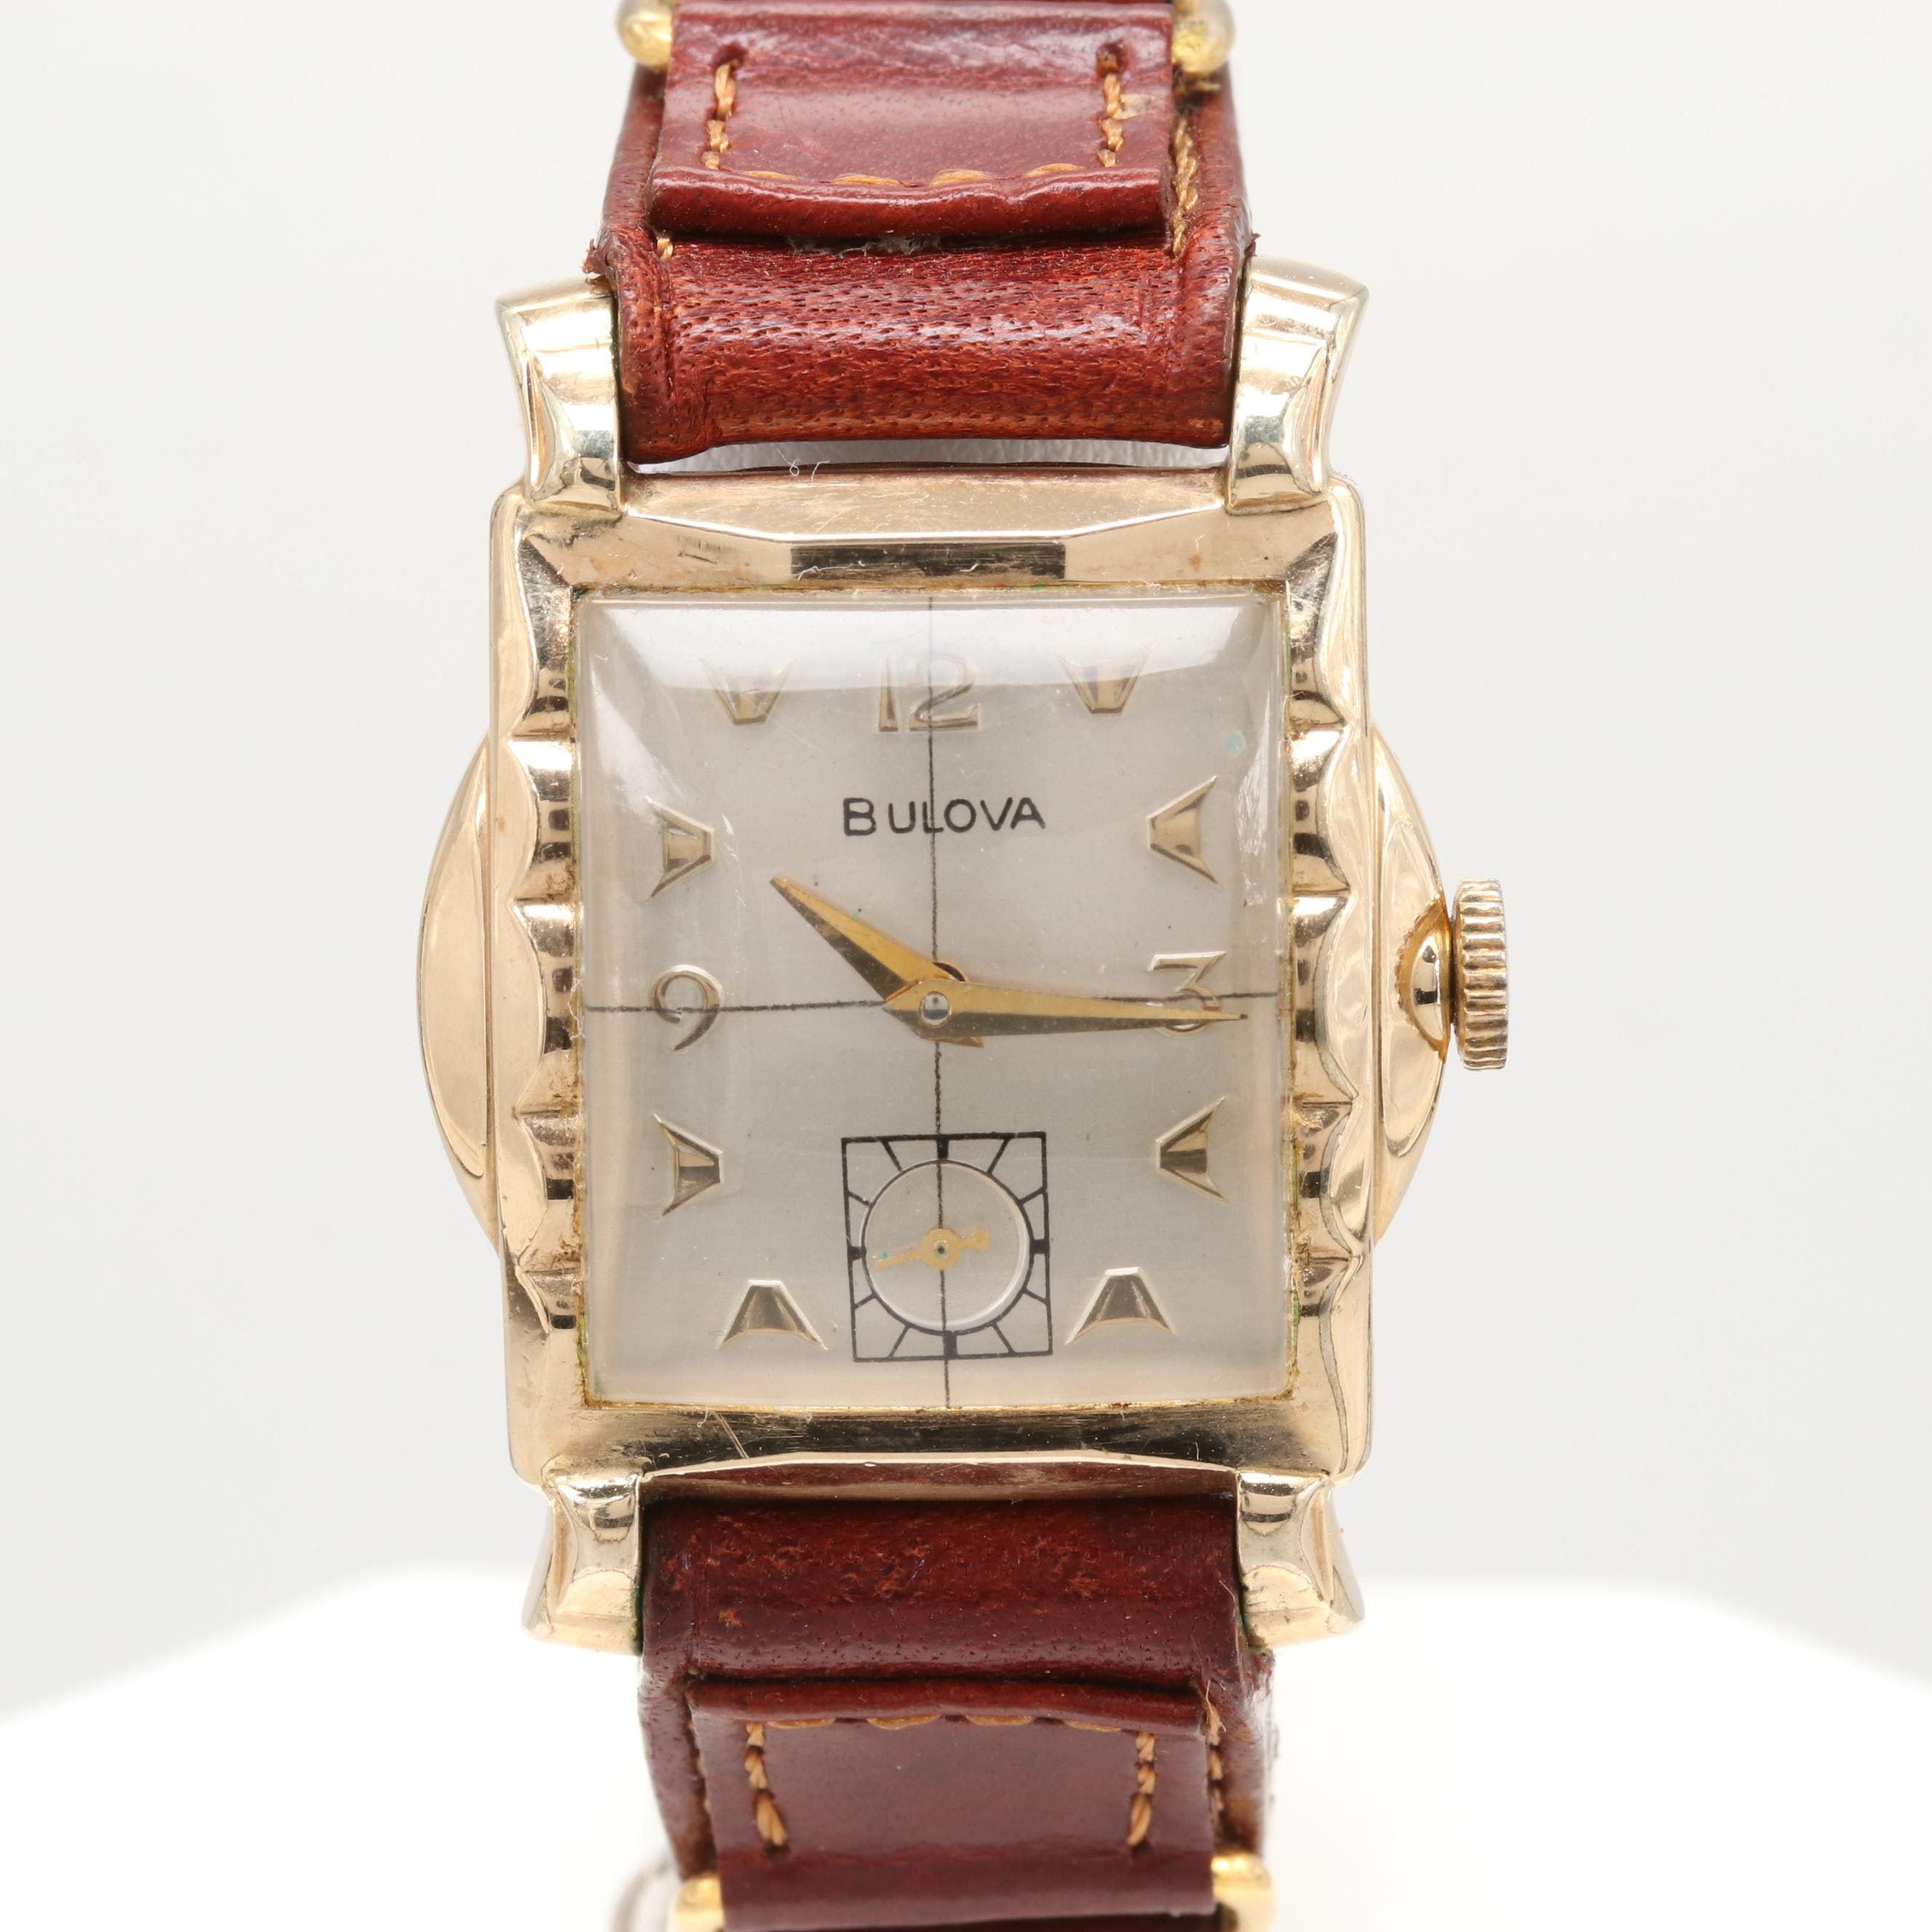 Bulova 10K Gold Plated Stem Wind Wristwatch